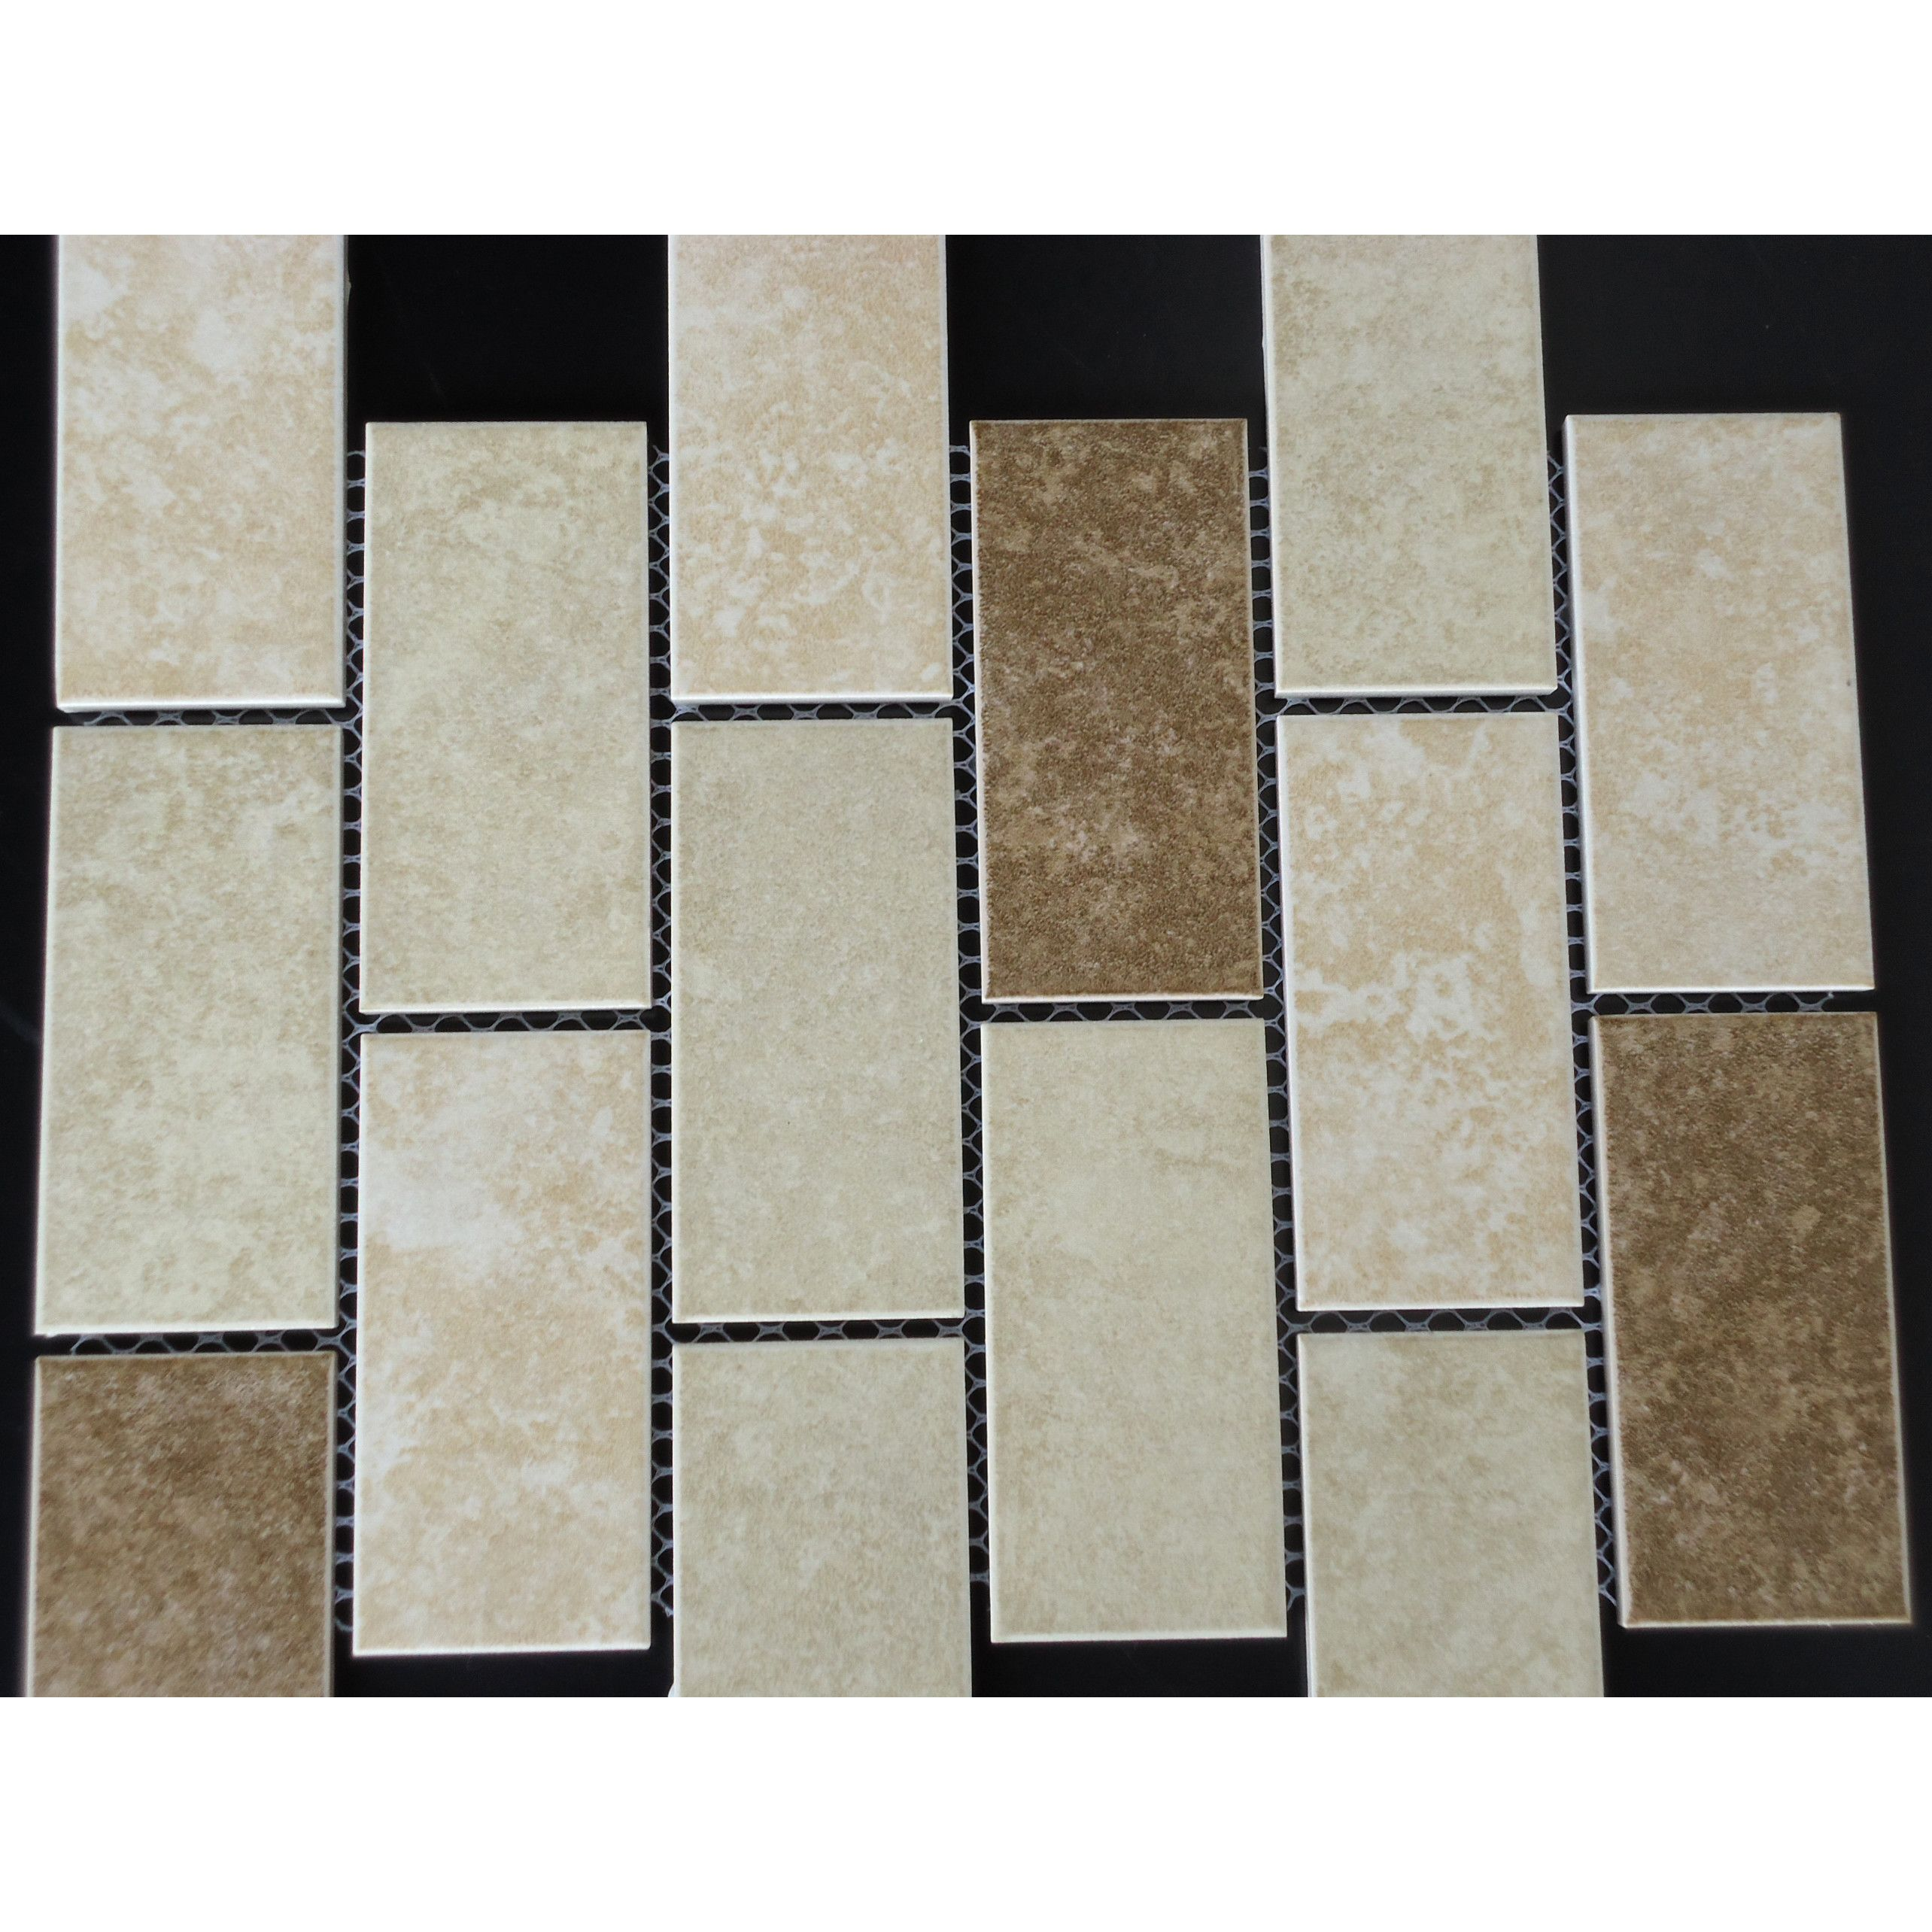 Classique 2 X 4 Porcelain Subway Tile In Beige And Ivory Subway